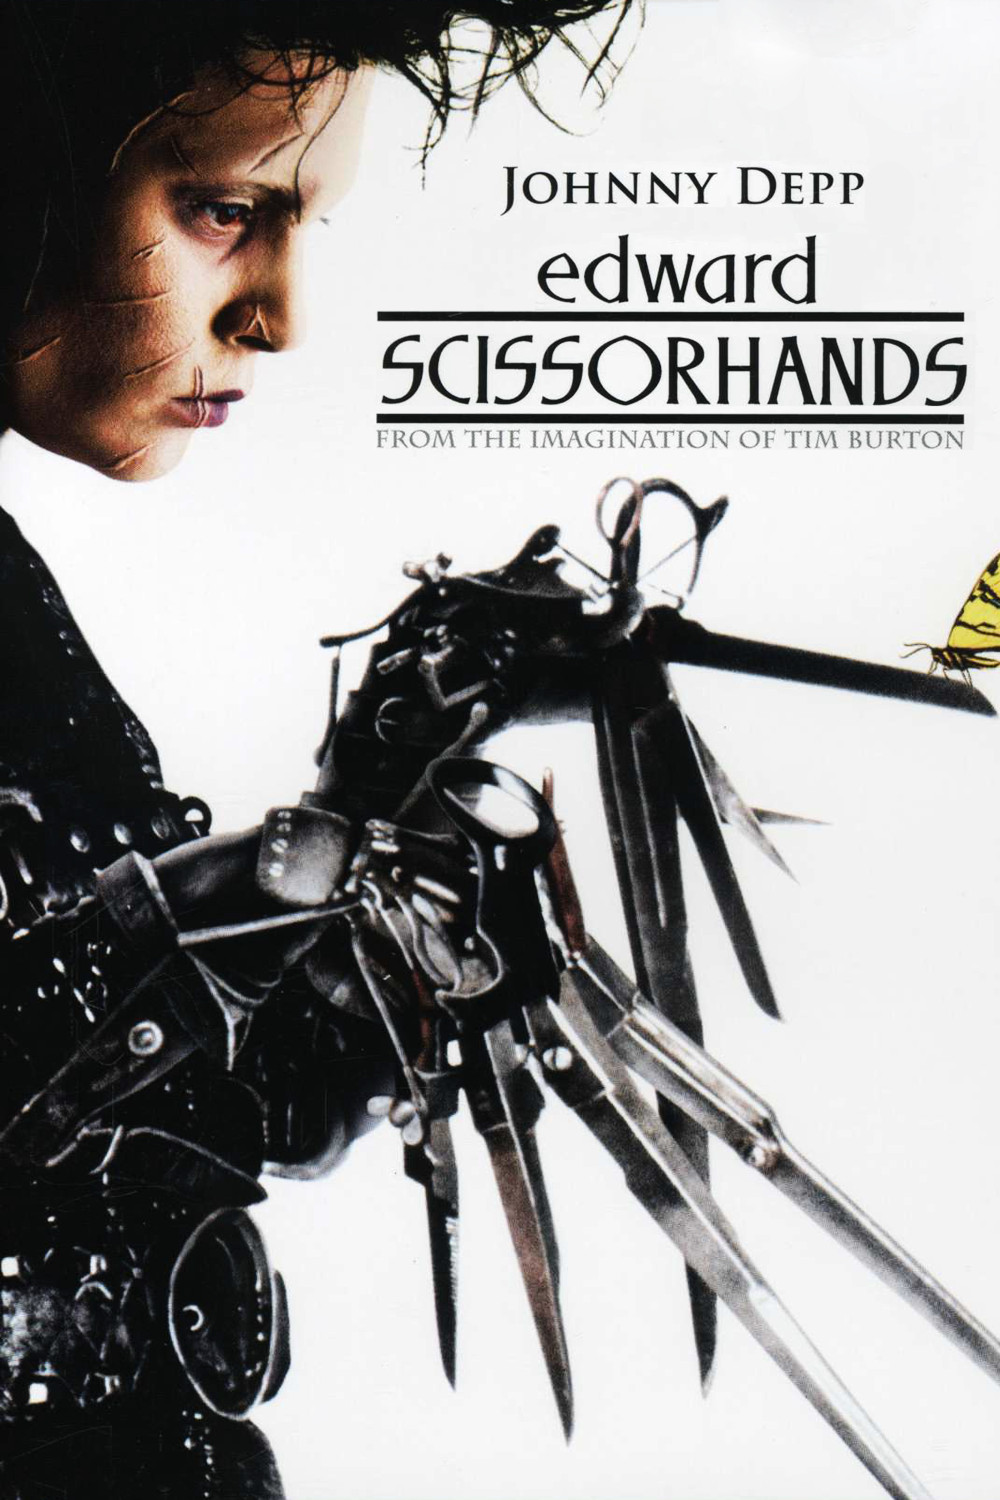 edward-scissorhands-original.jpg